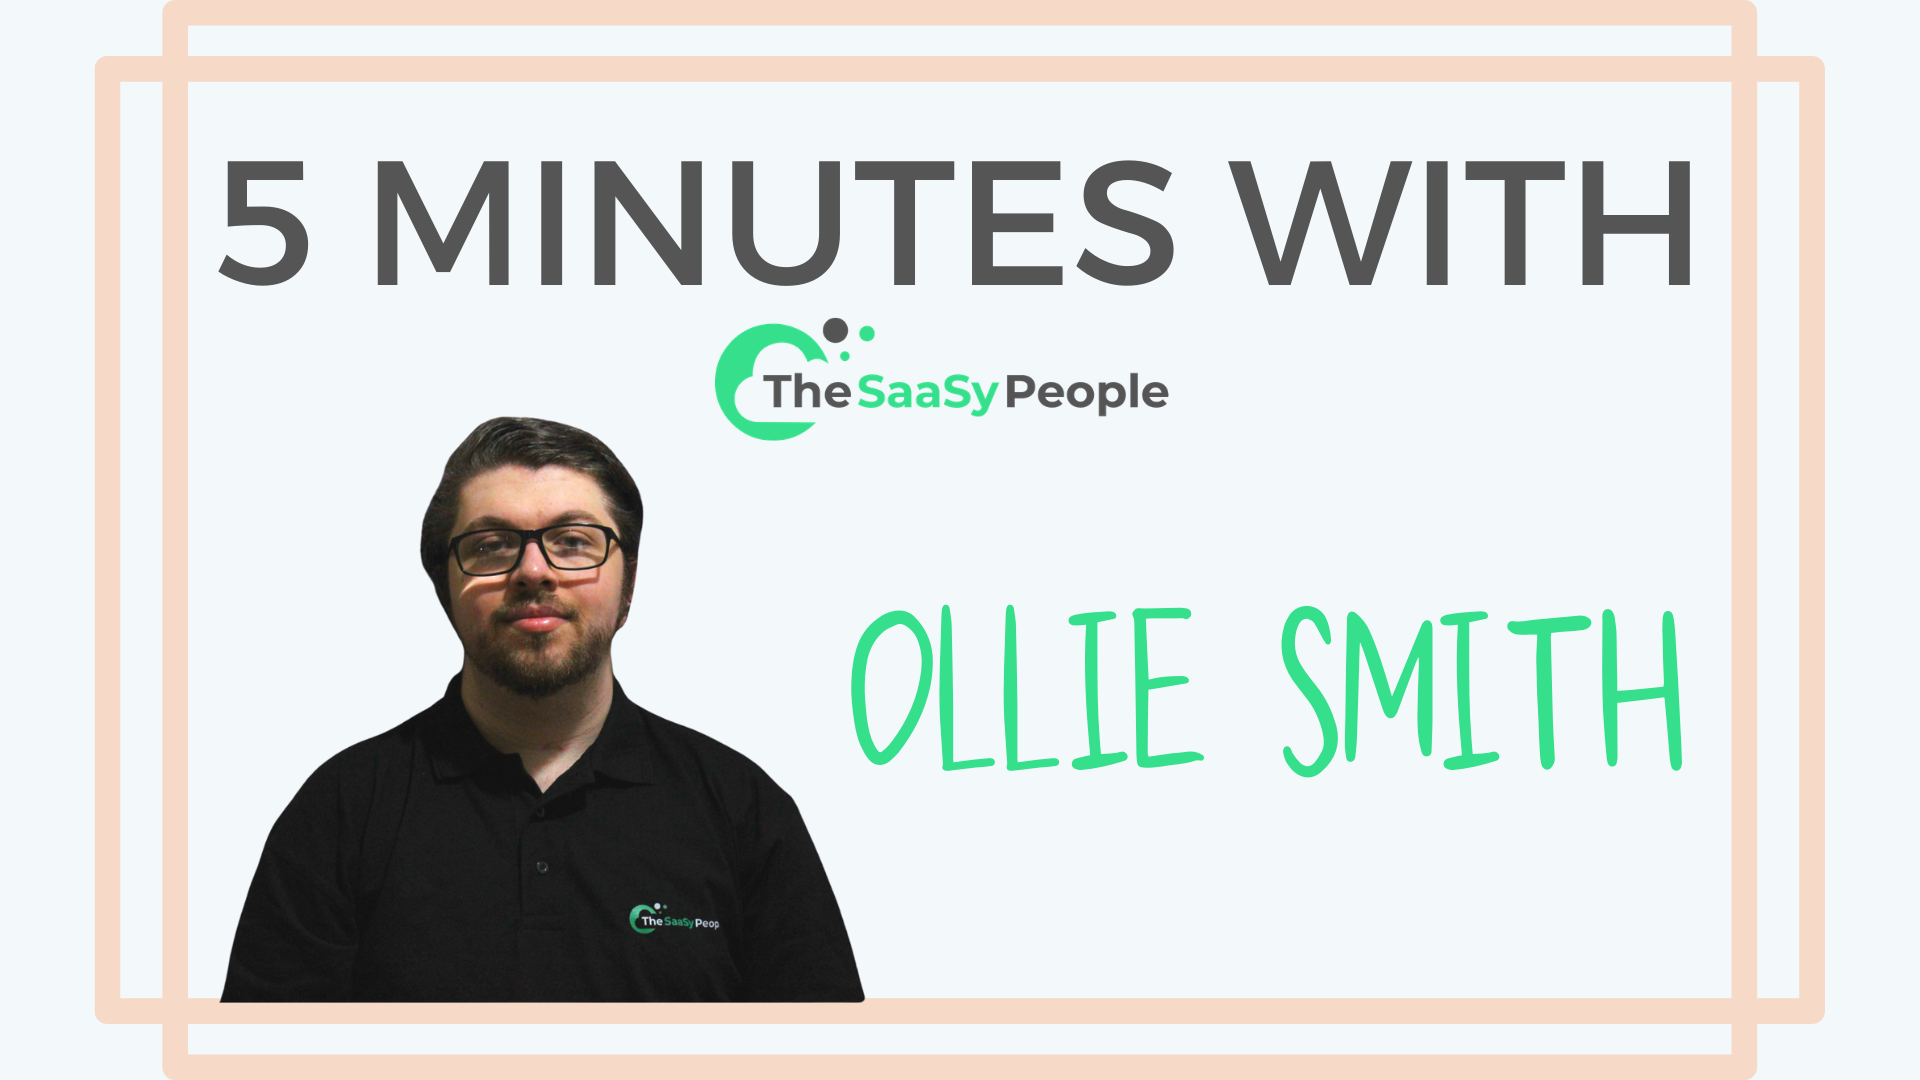 5 Minutes With - Ollie Smith